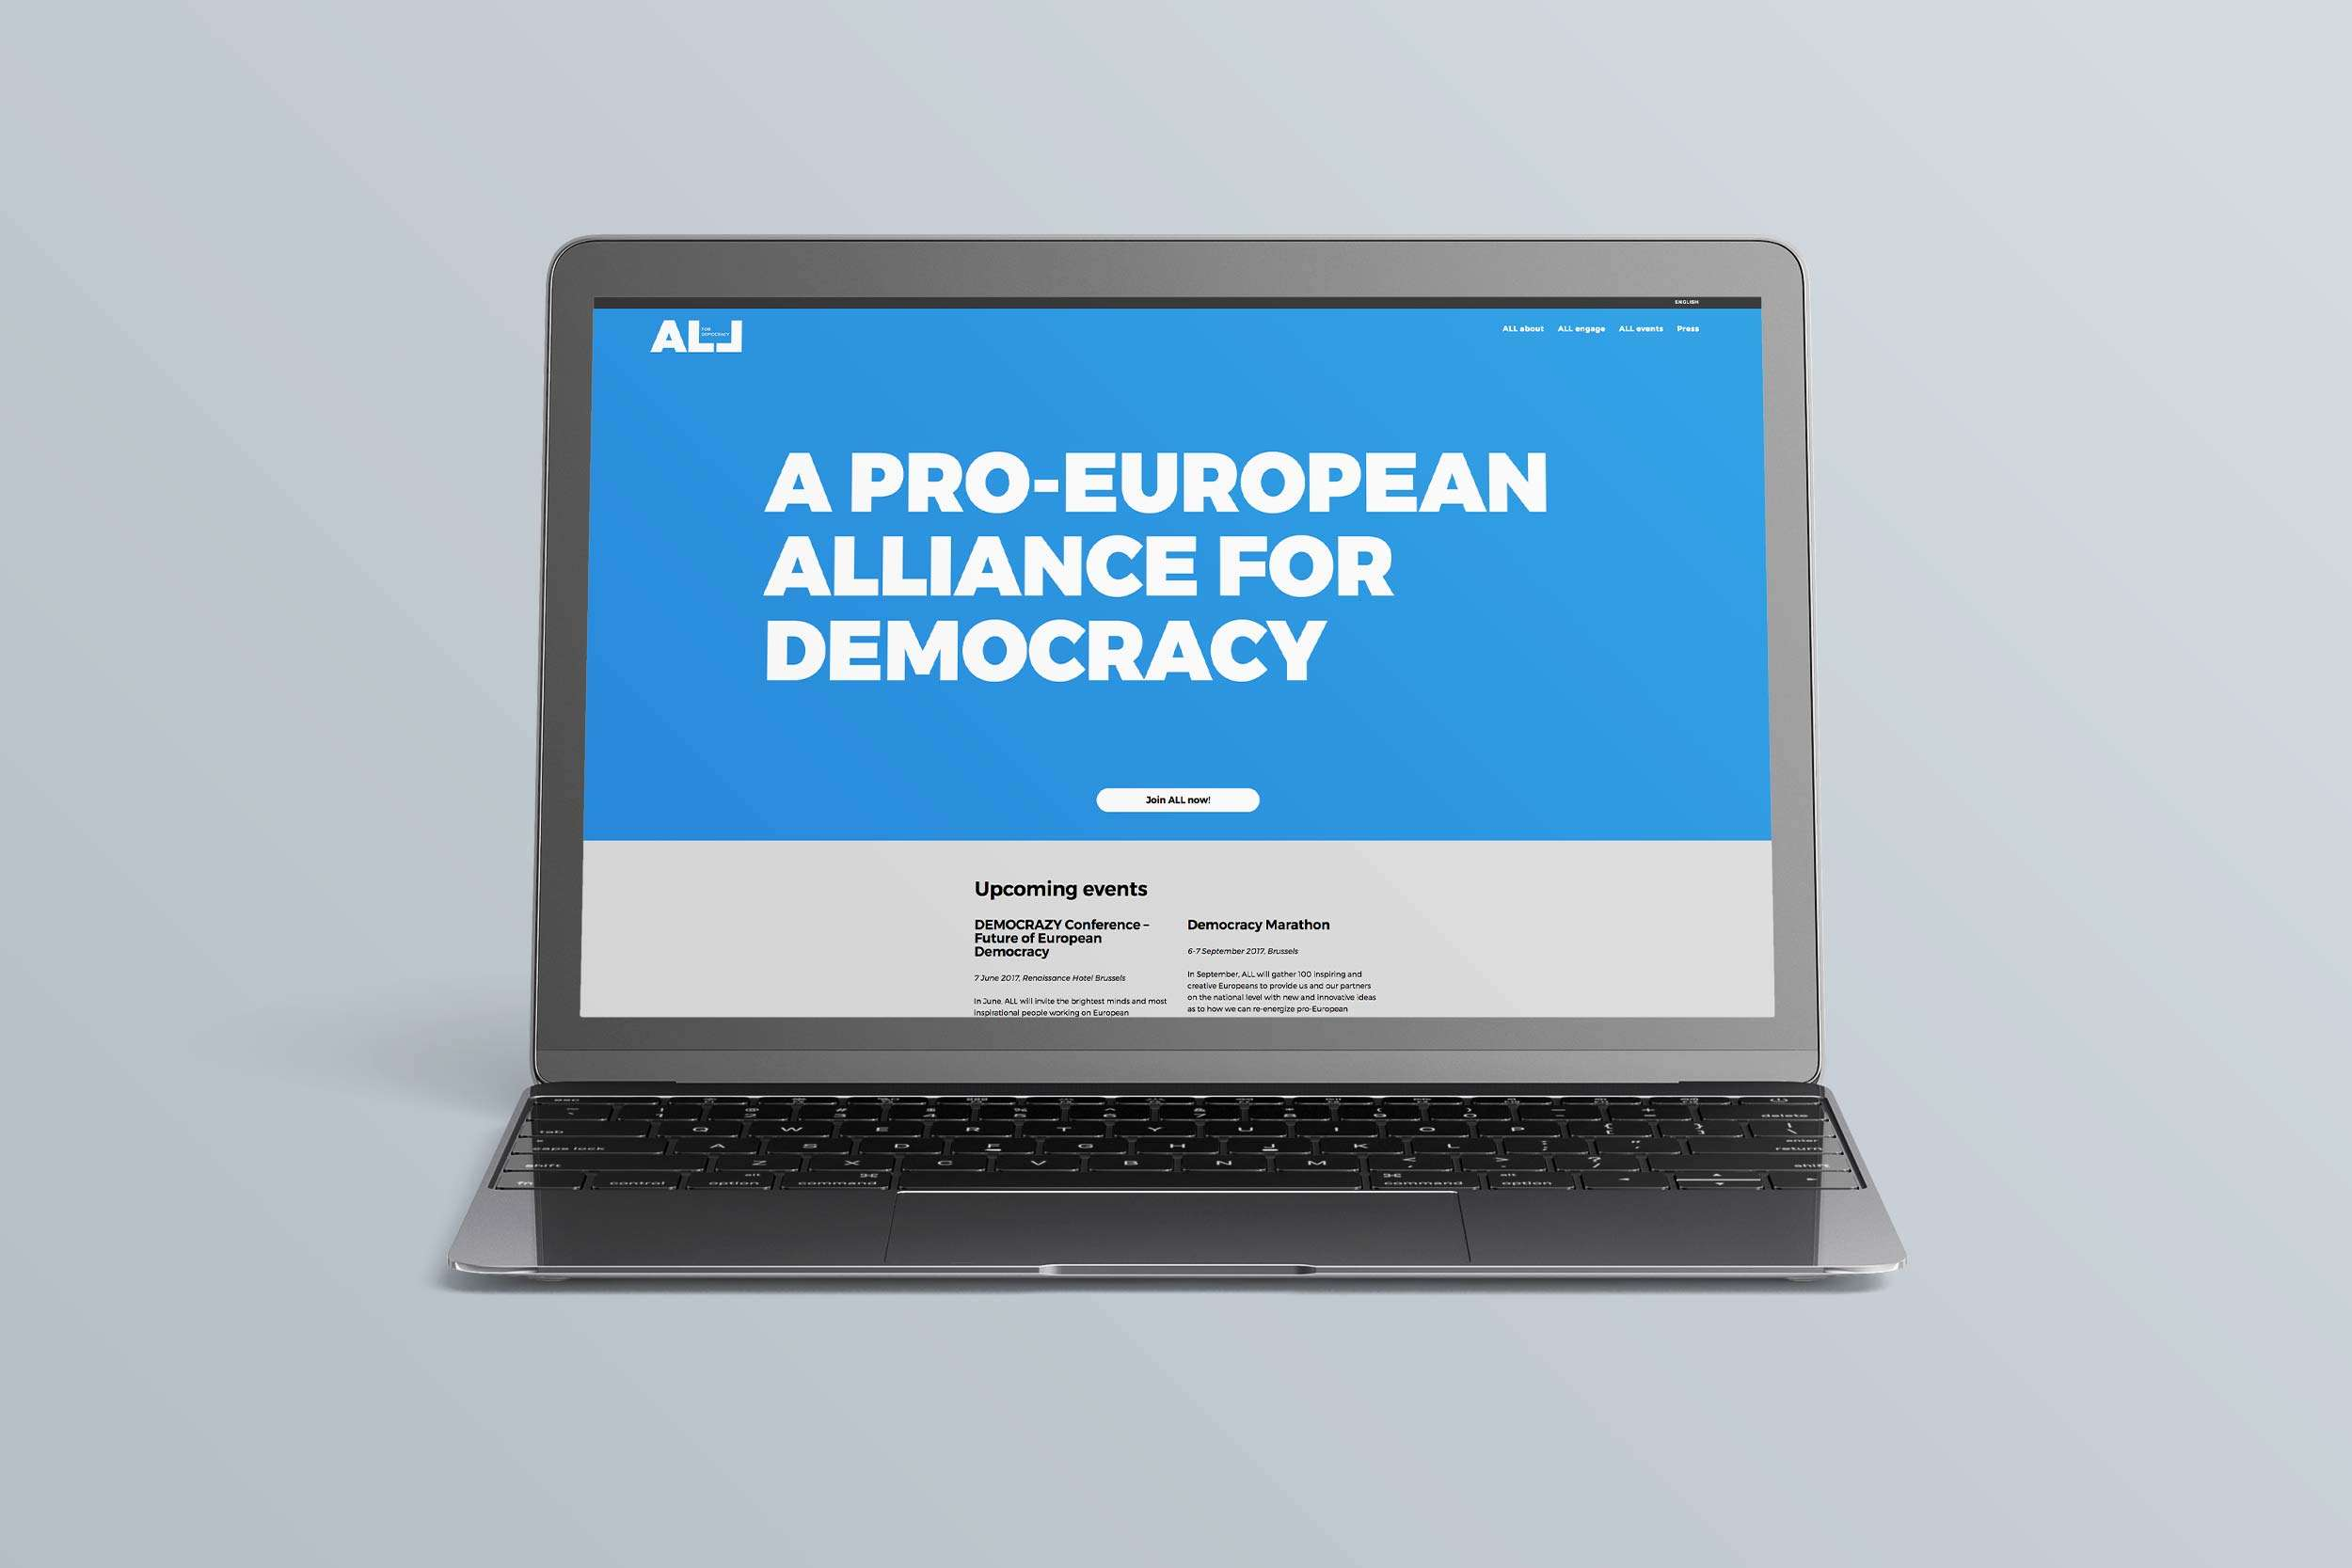 ALL for Democracy Macbook